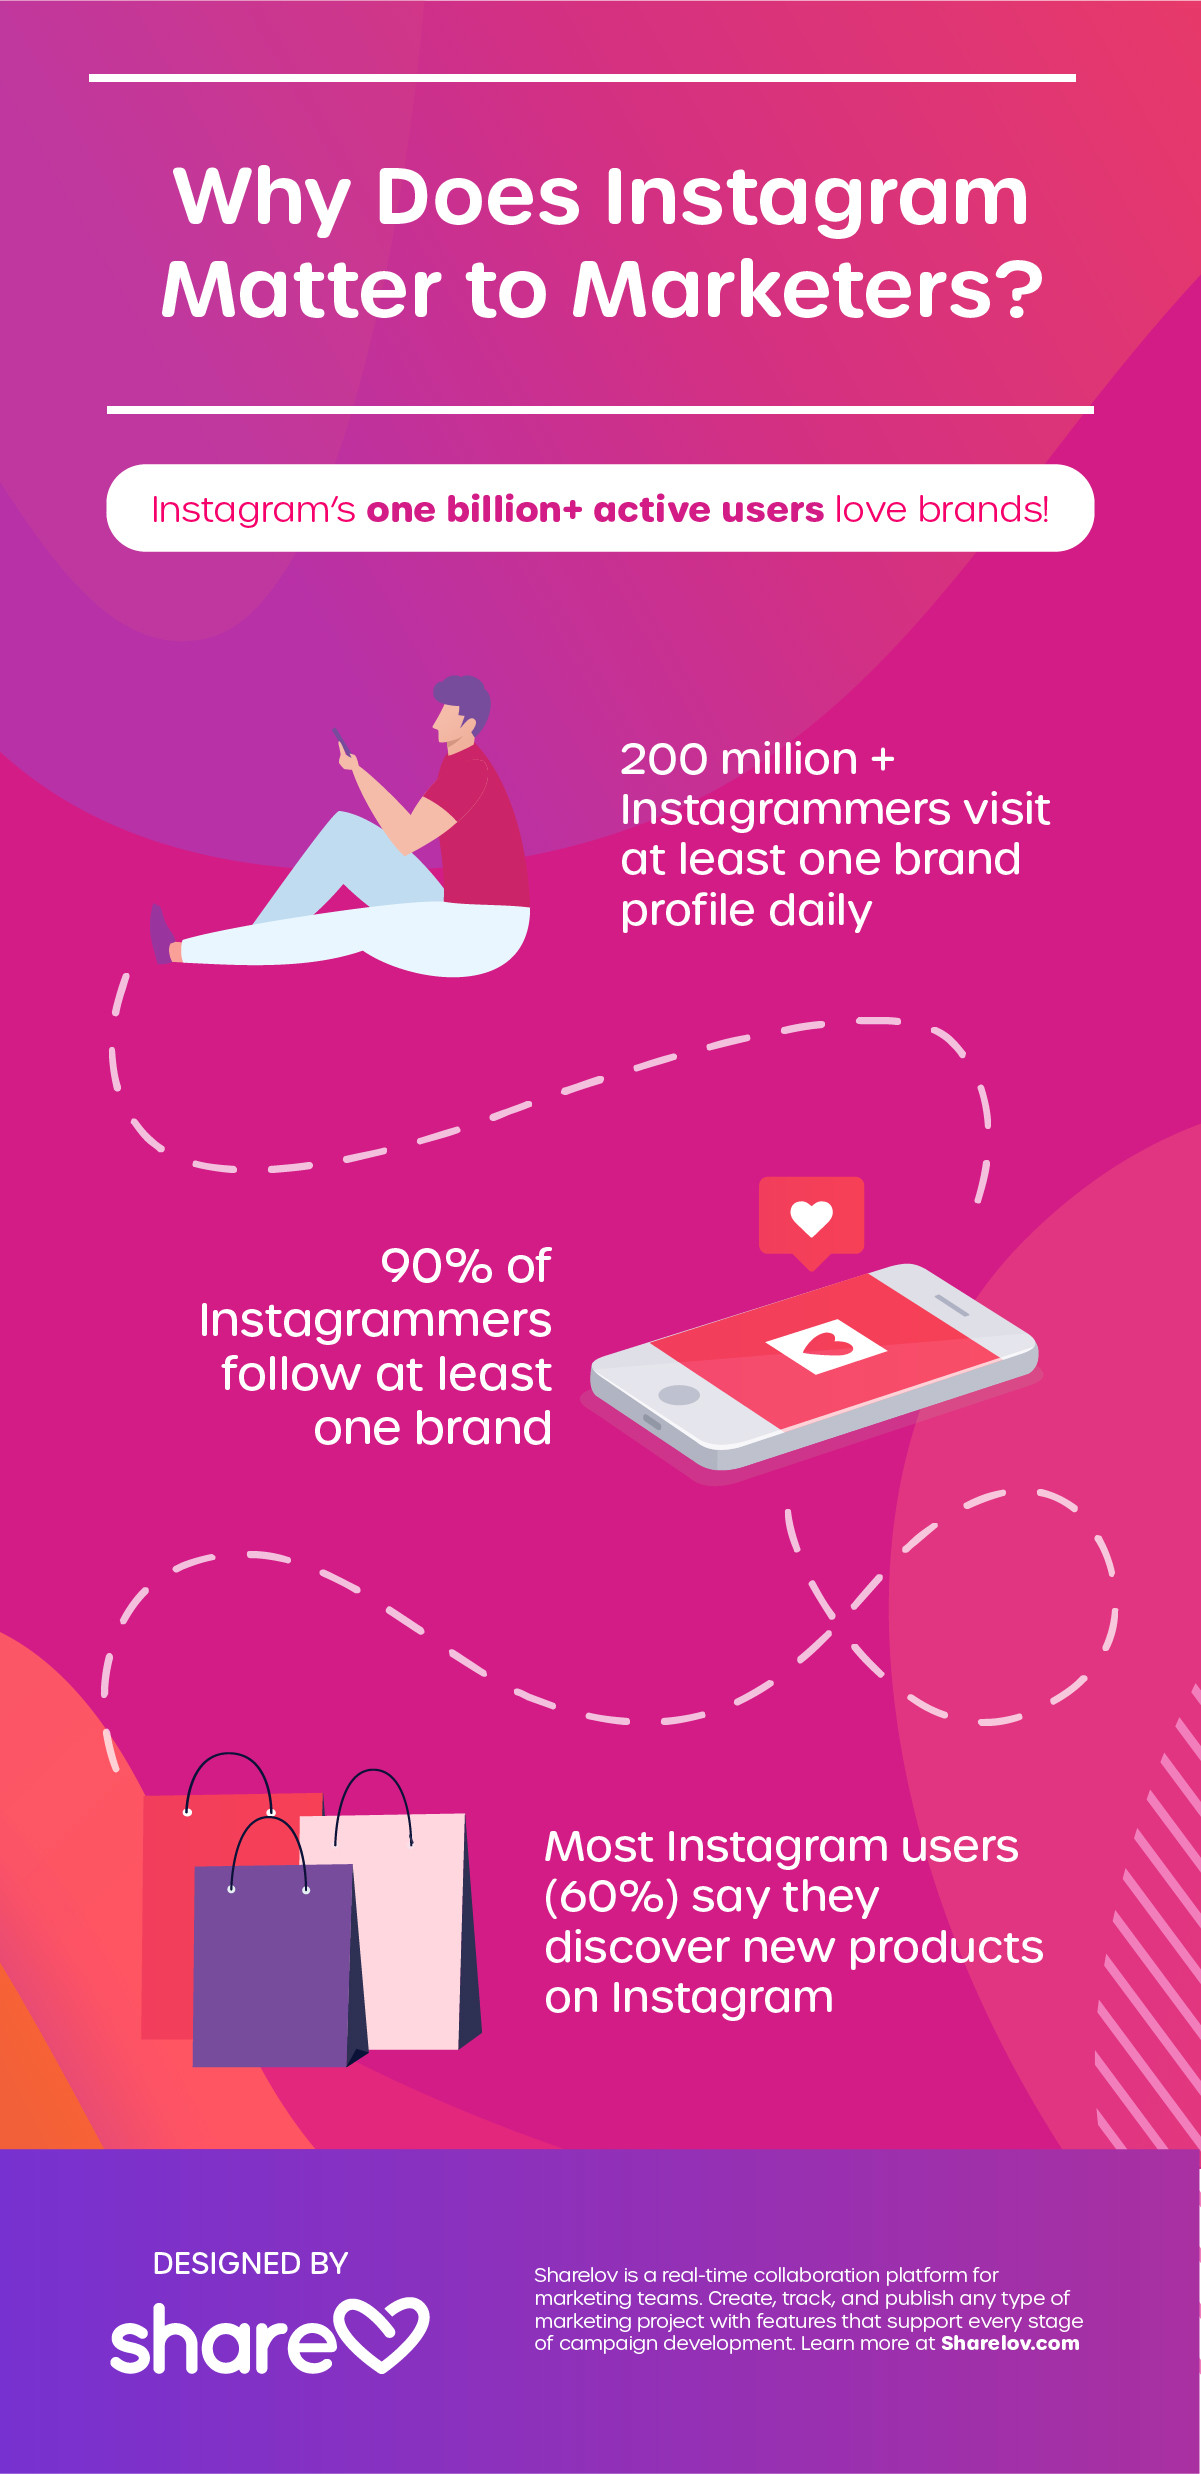 Why Does Instagram Matter to Marketers - Infographic